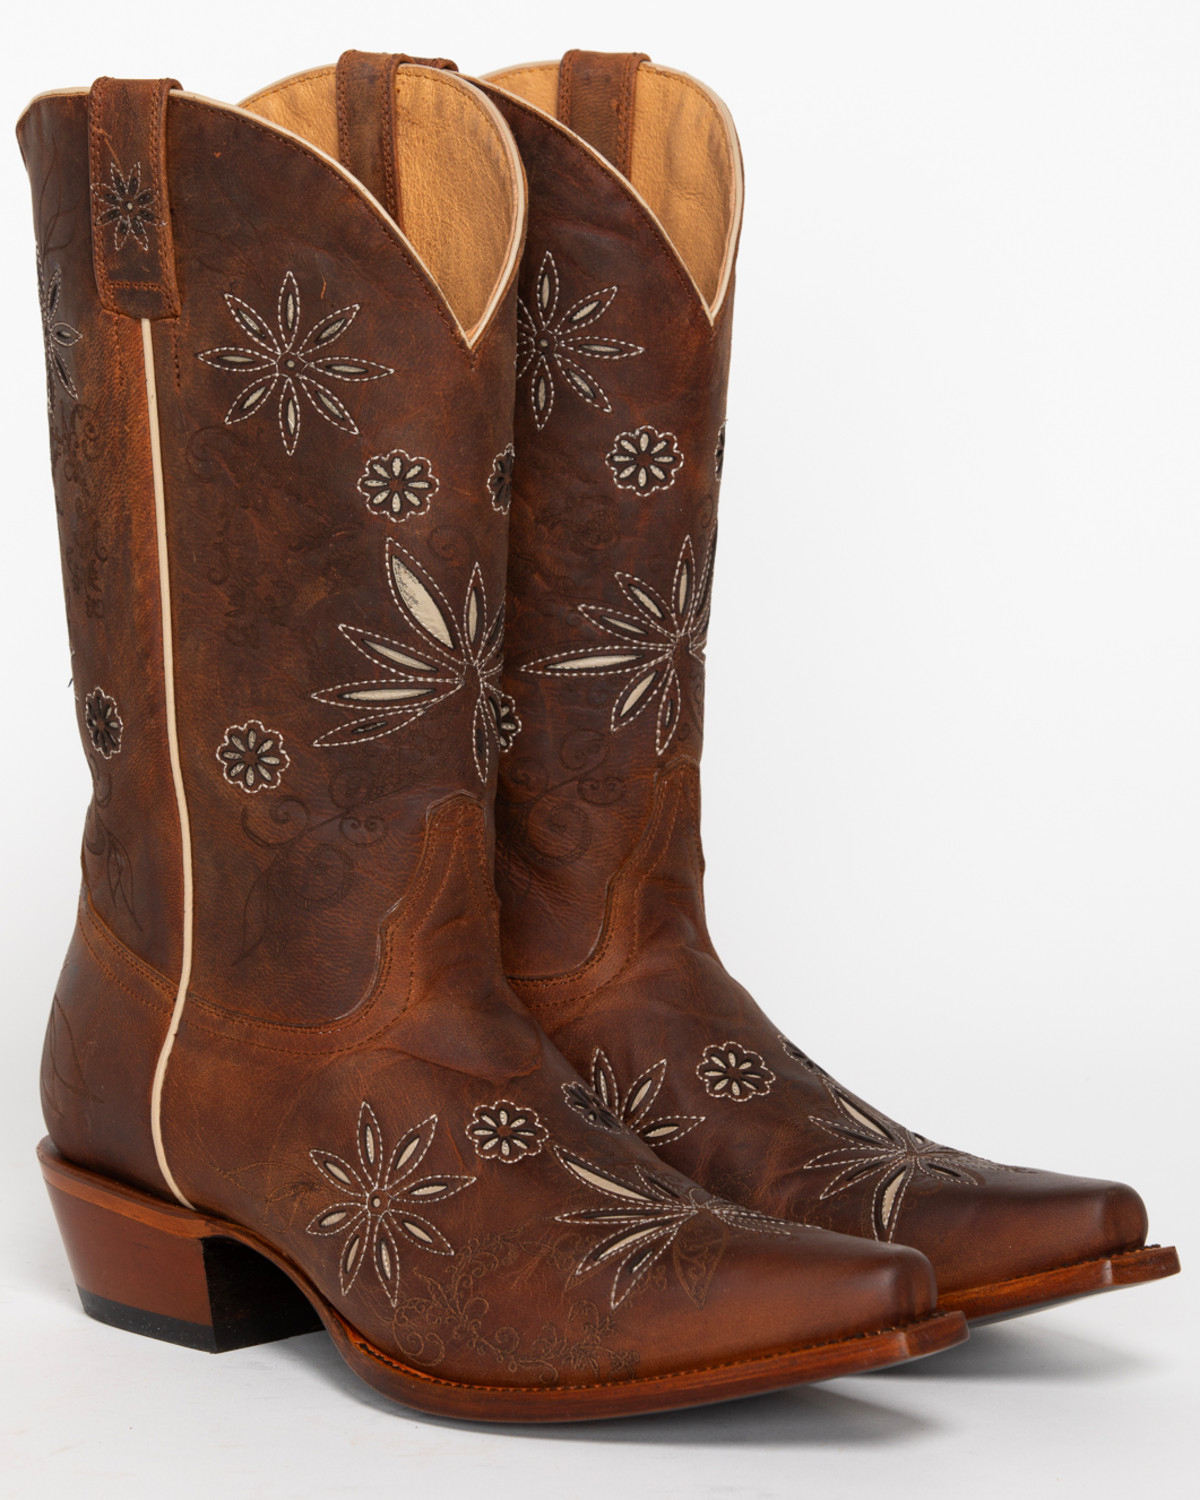 The best cowboy boots are well made, beautifully stitched and offer protection and comfort. Western cowboy boots can be worn by men and women. They're not just for people out wrangling cattle on the ranch, anymore. Authentic cowboy boots are usually a great investment: they .